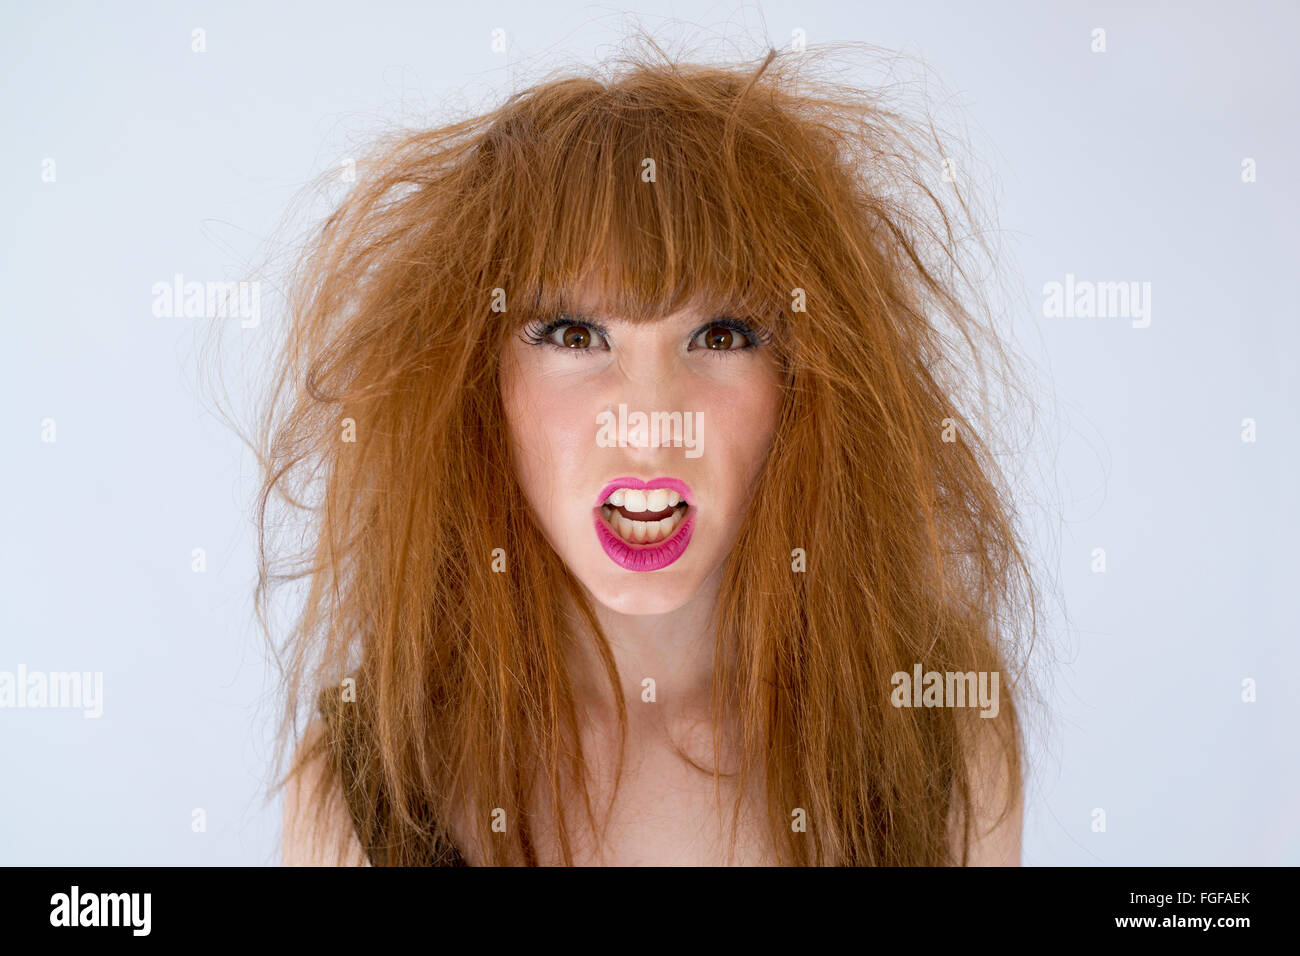 Portrait of a woman with messy disheveled hair with and expression of anger - Stock Image